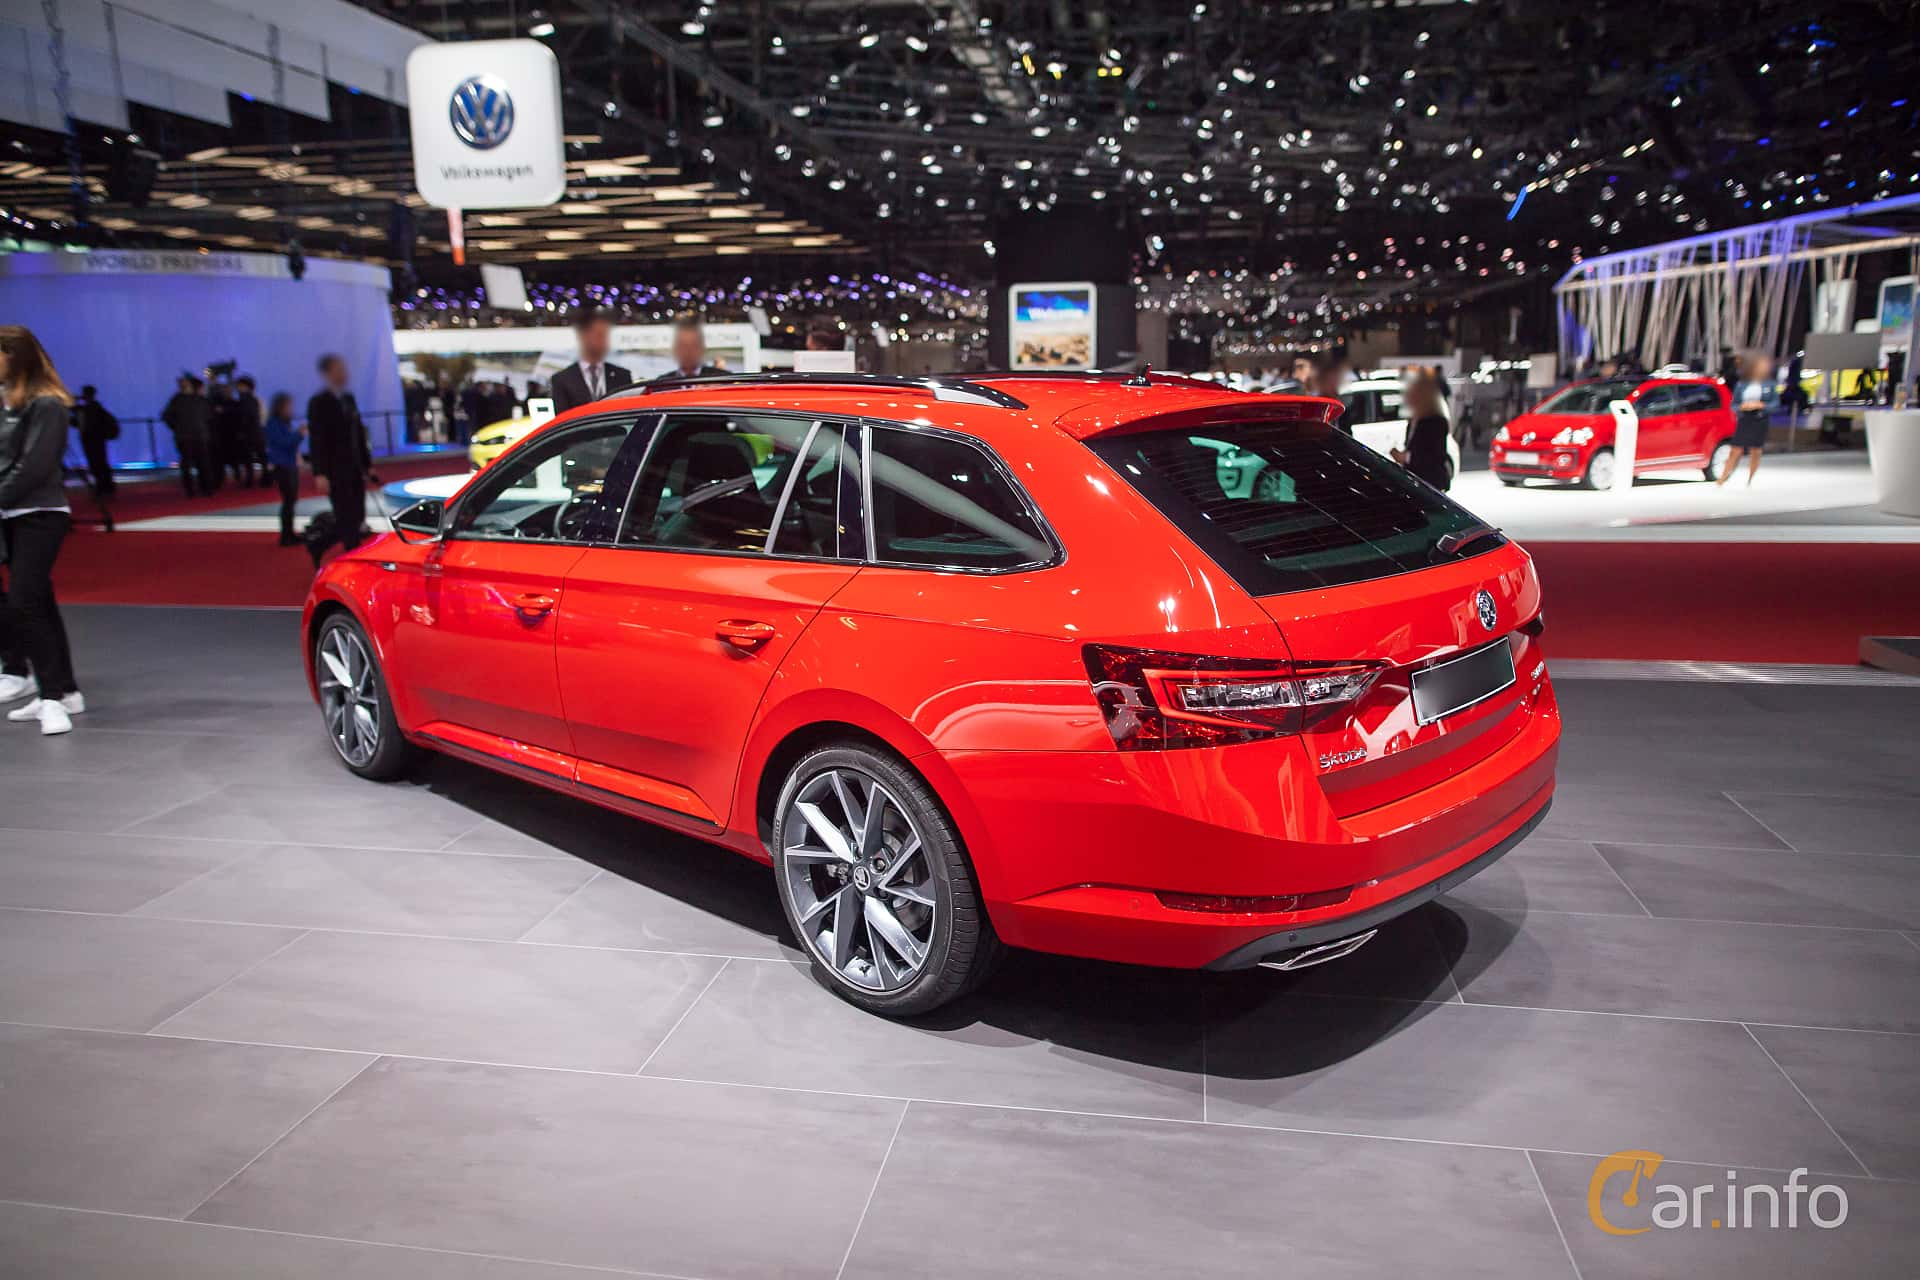 skoda superb combi 2 0 tsi 4x4 dsg sequential 280hp 2017 at geneva motor show 2017. Black Bedroom Furniture Sets. Home Design Ideas